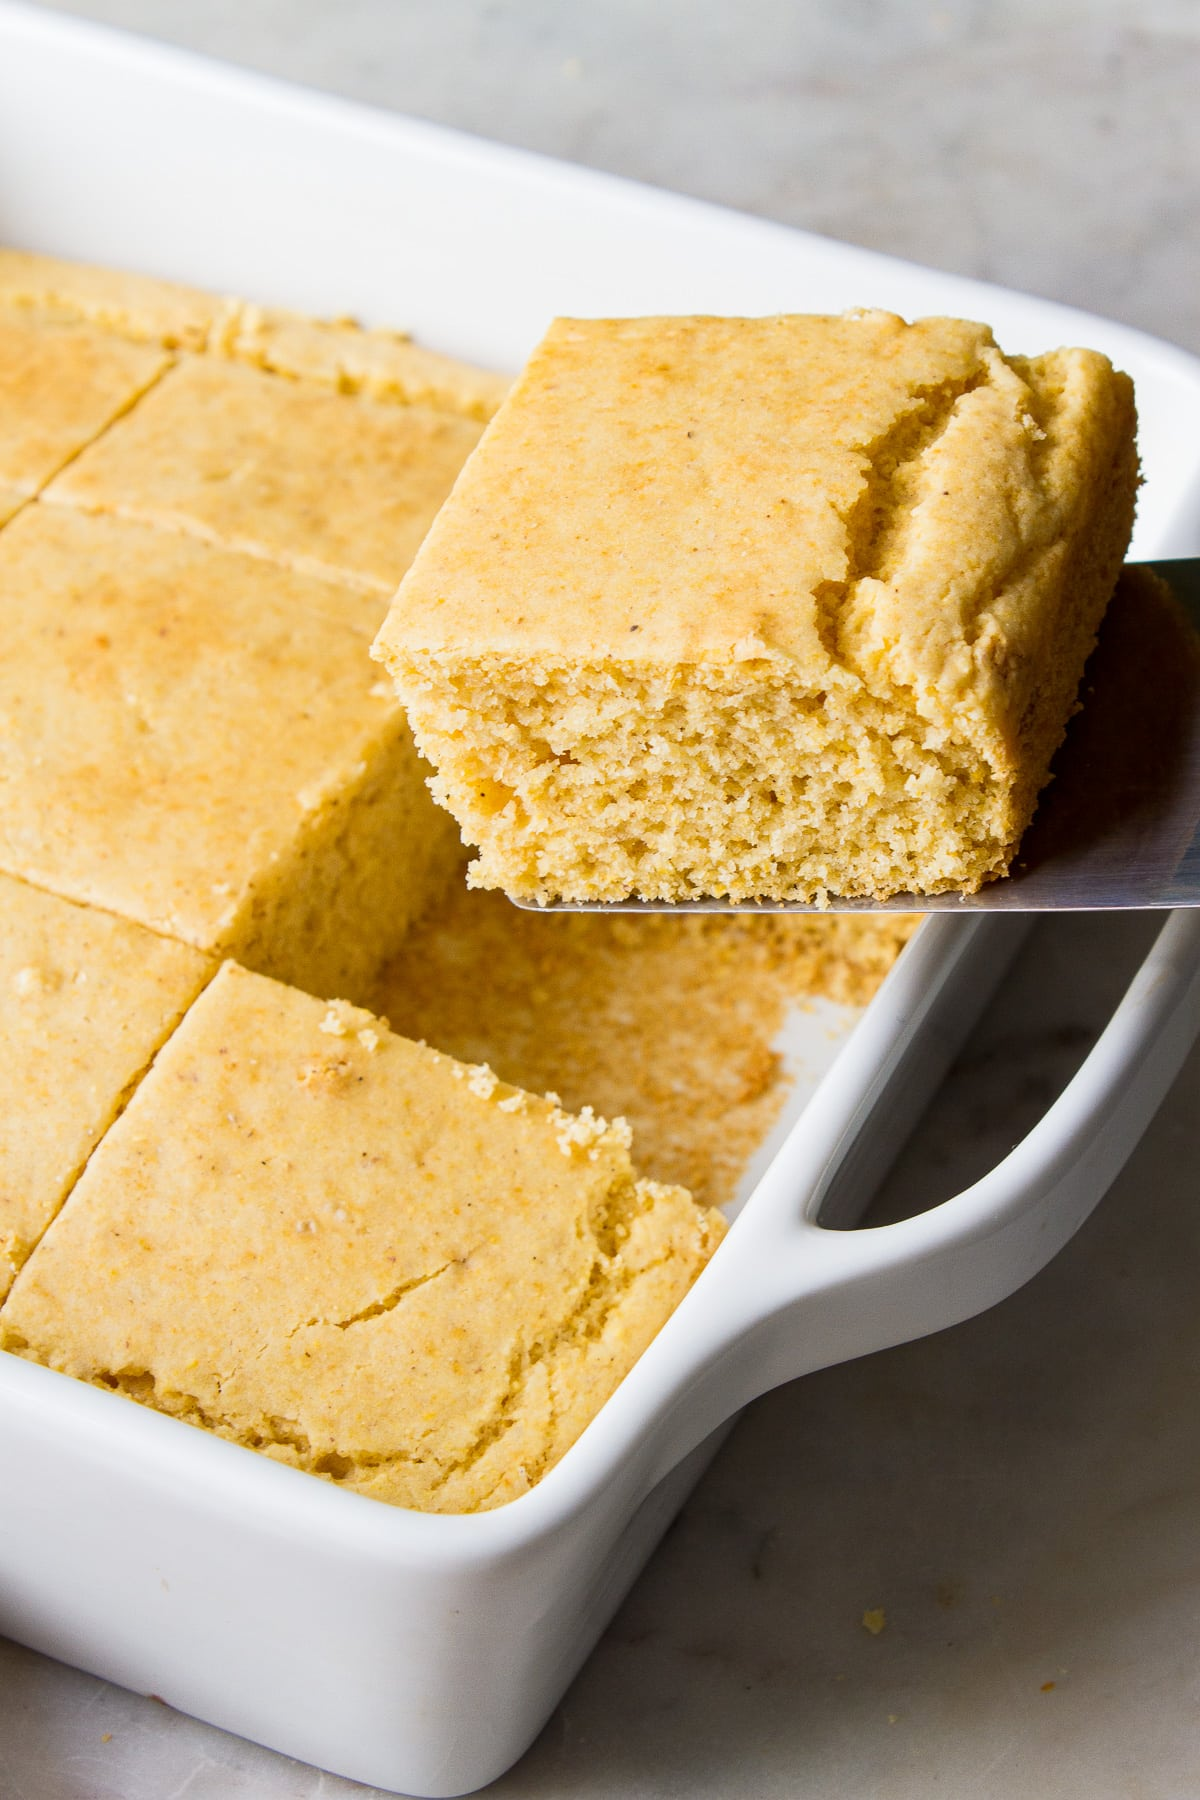 side angle view of cornbread being lifted from baking dish with spatula.